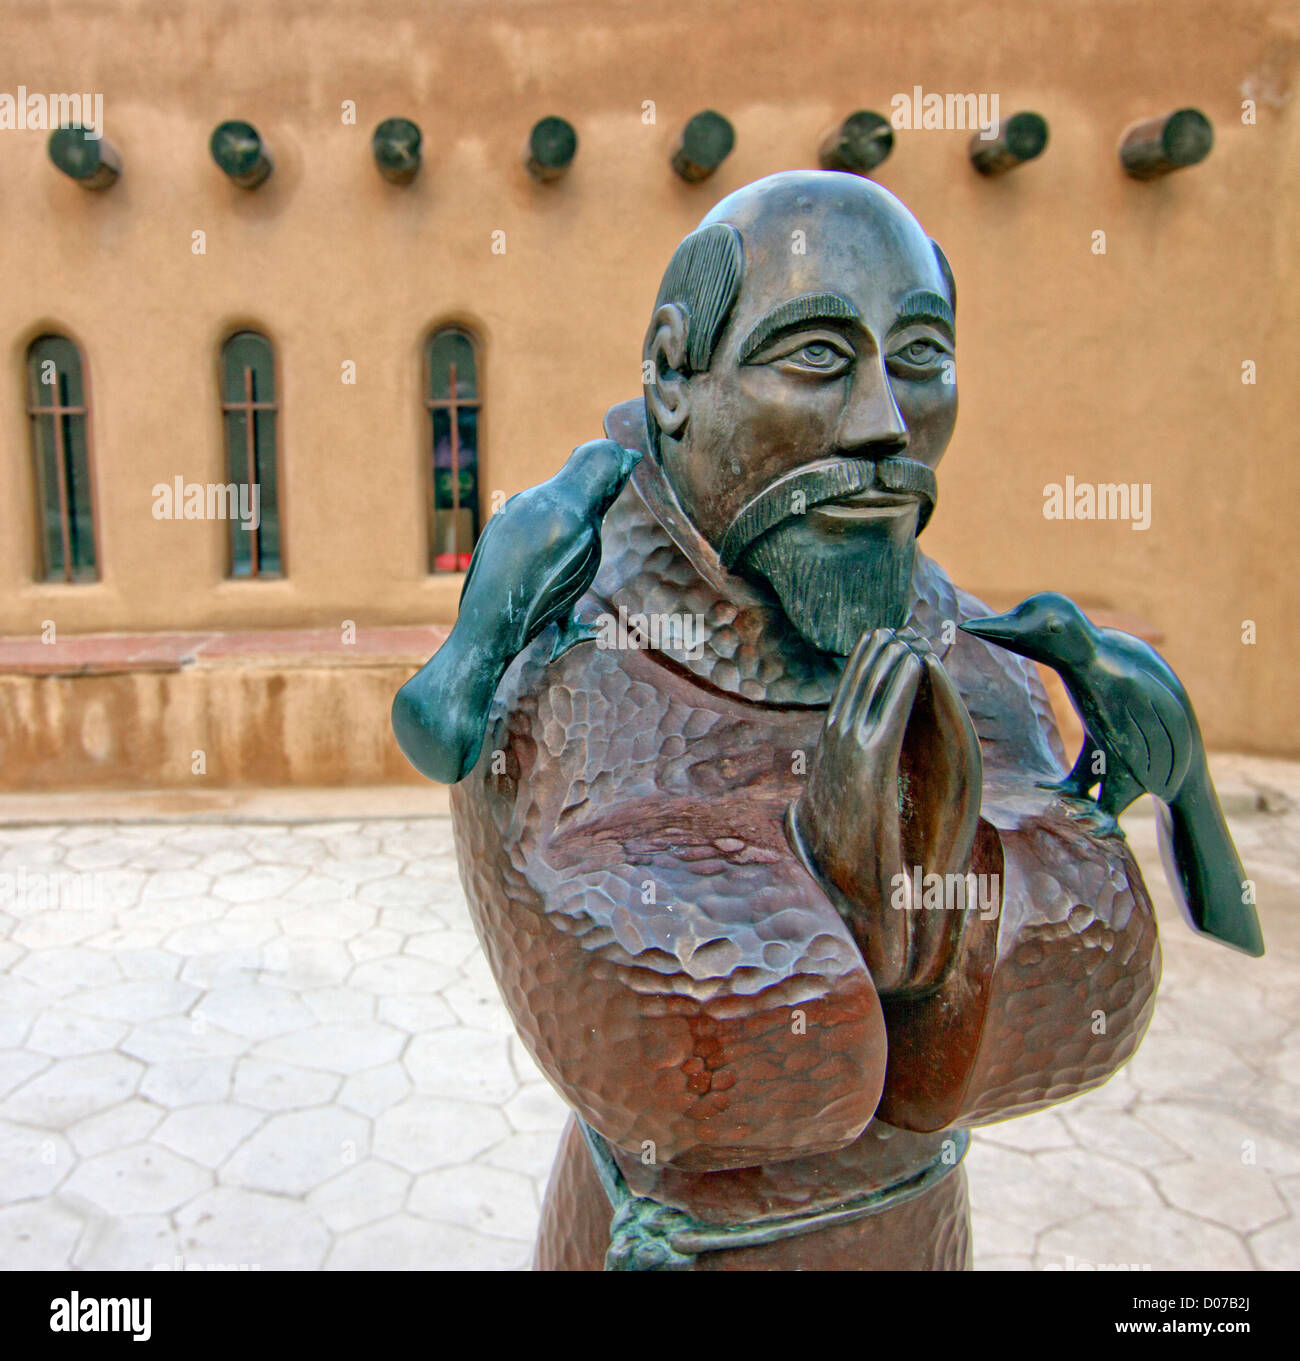 USA, New Mexico, Chimayo, Sculpture of Saint Francis of Assisi at Chimayo Sanctuary New Mexico. Stock Photo